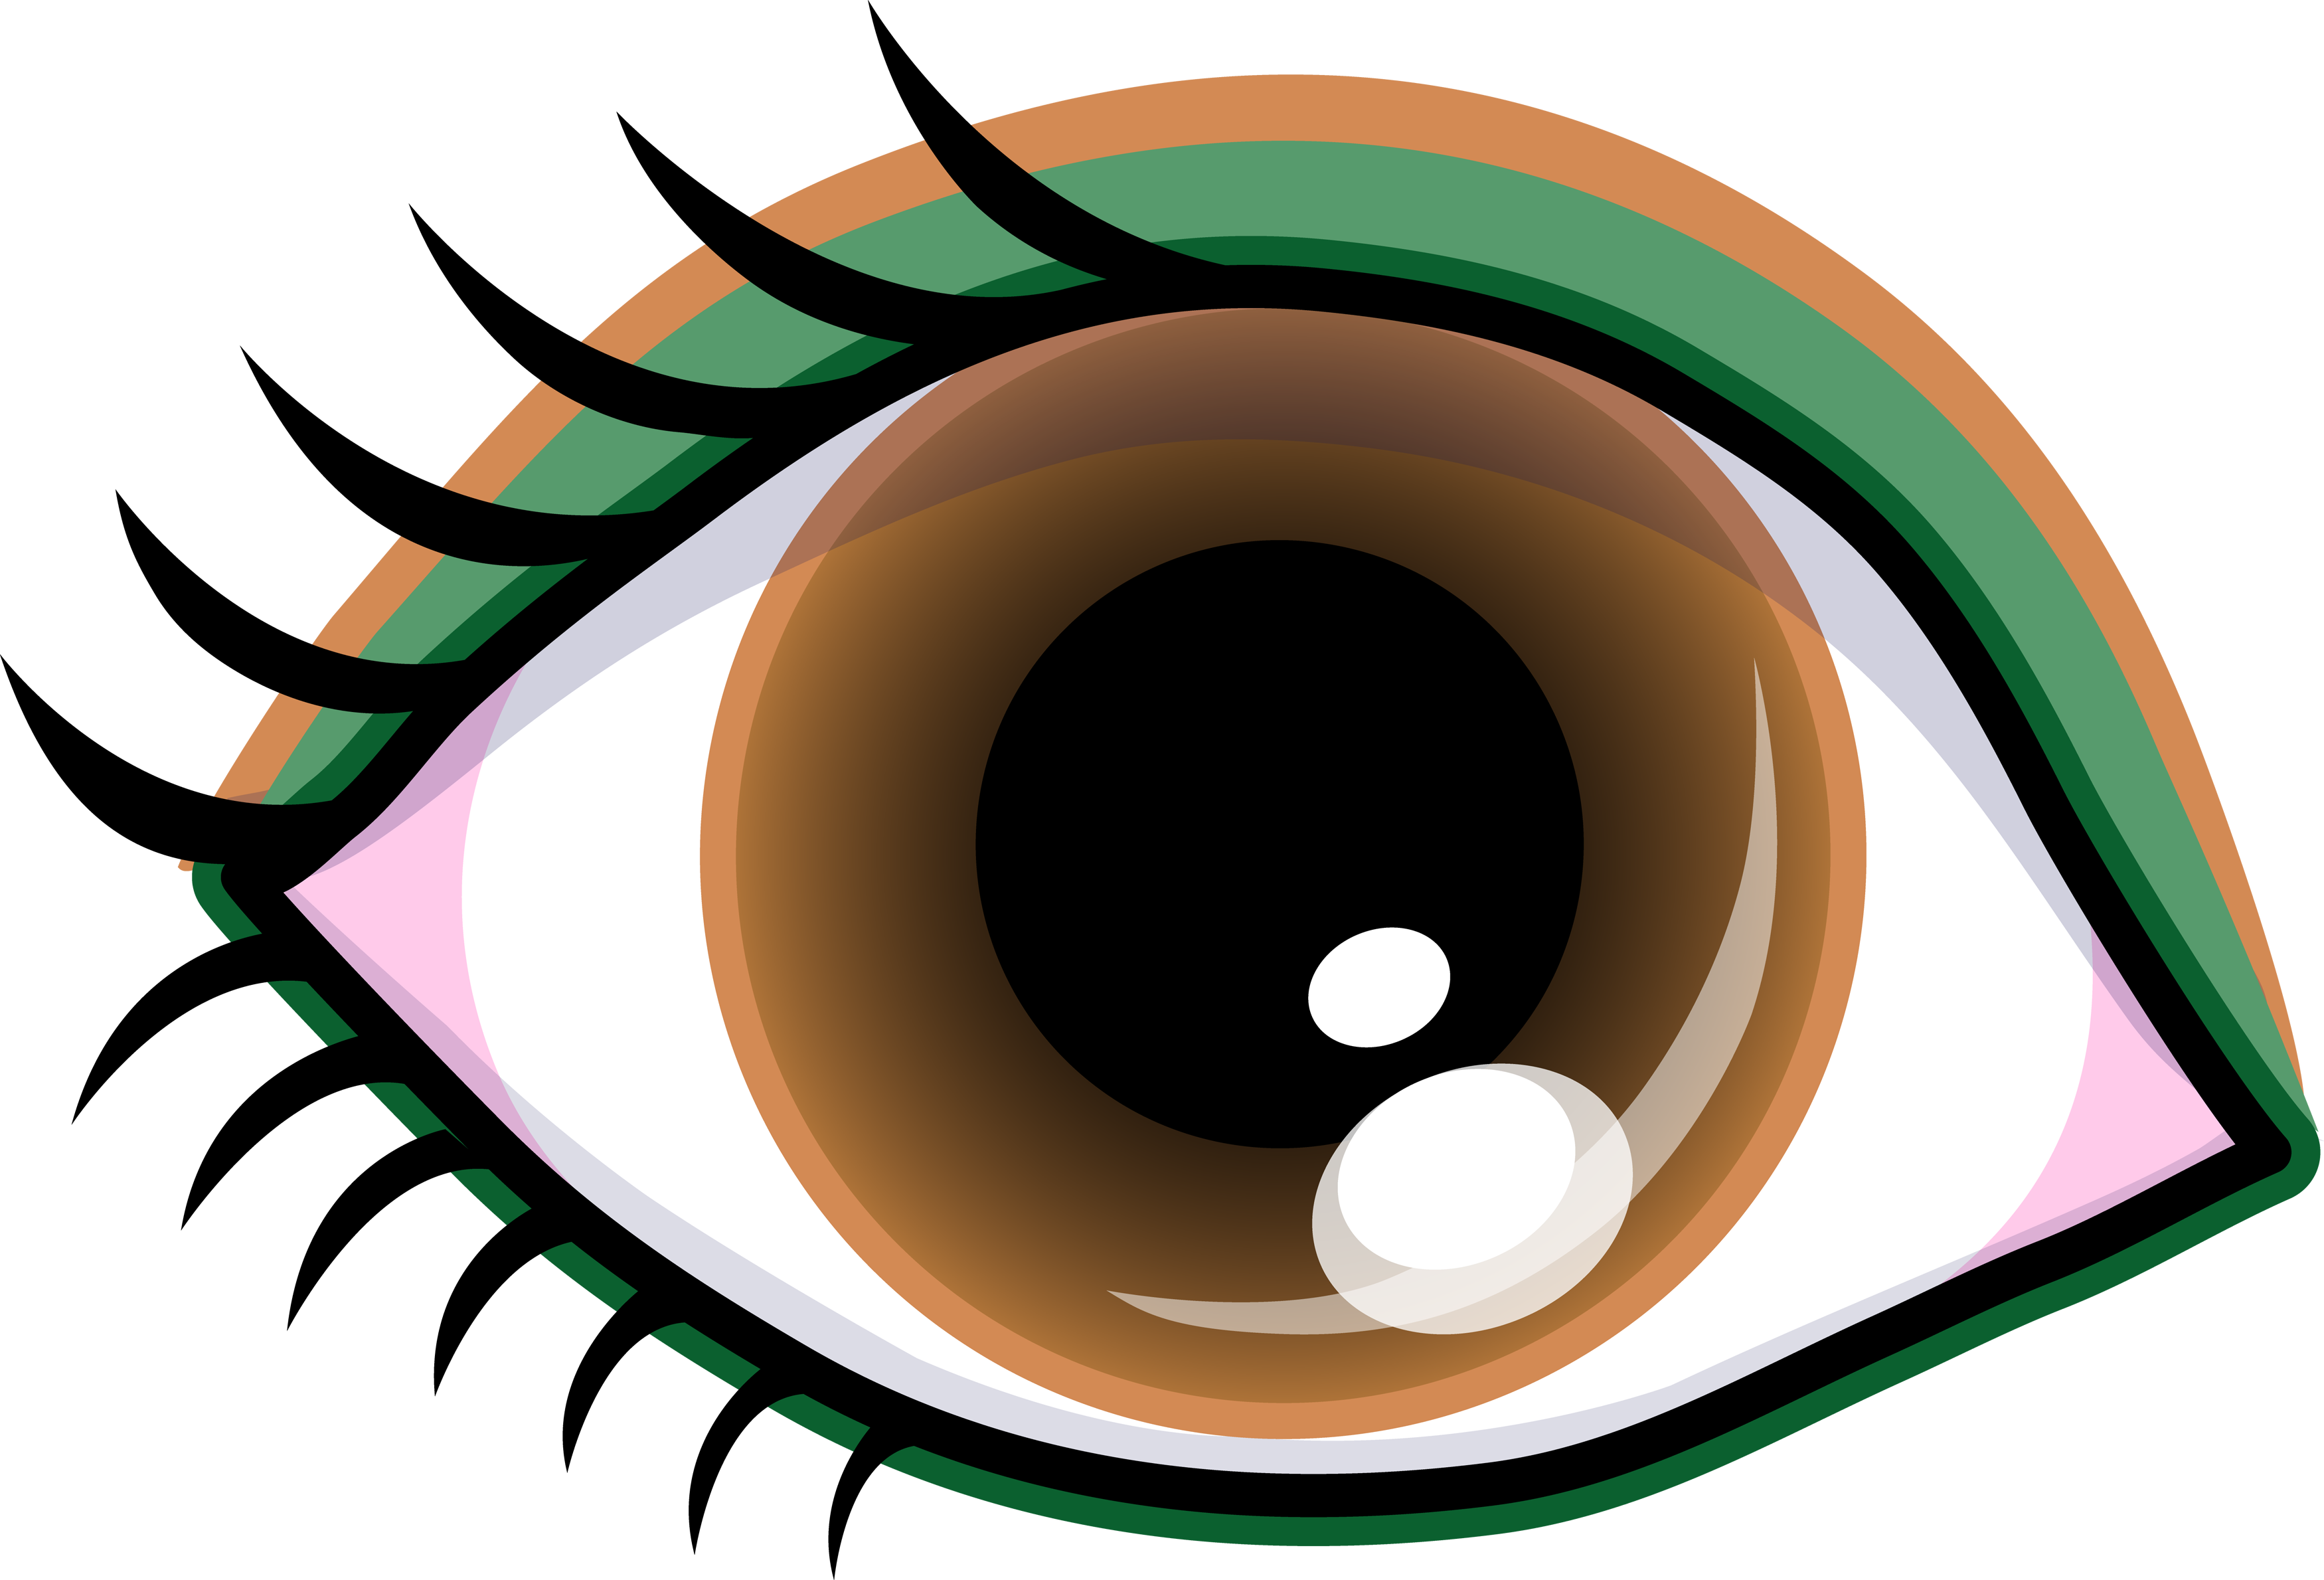 svg transparent download Clip art black and. Vision clipart cute eye.